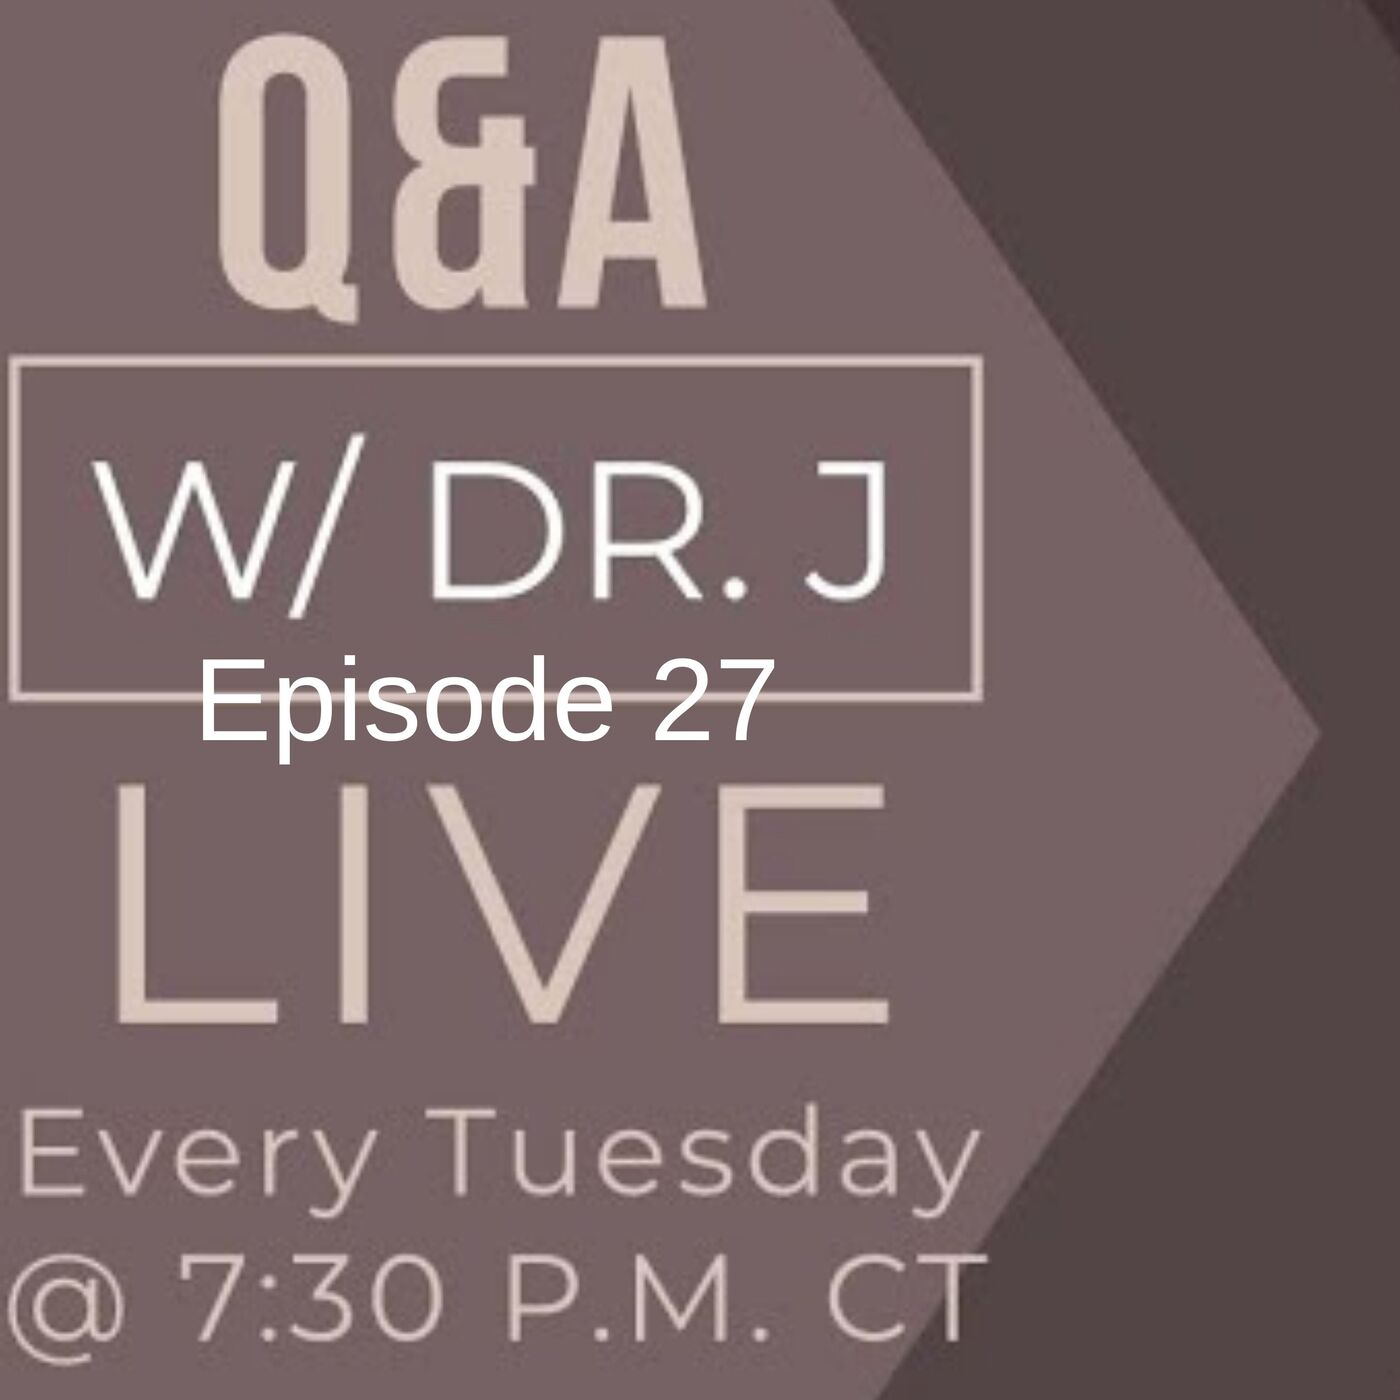 EP 27 Q&A w/ Dr J -  All about Necks and Chins with Top Plastic surgeon Dr Jeneby